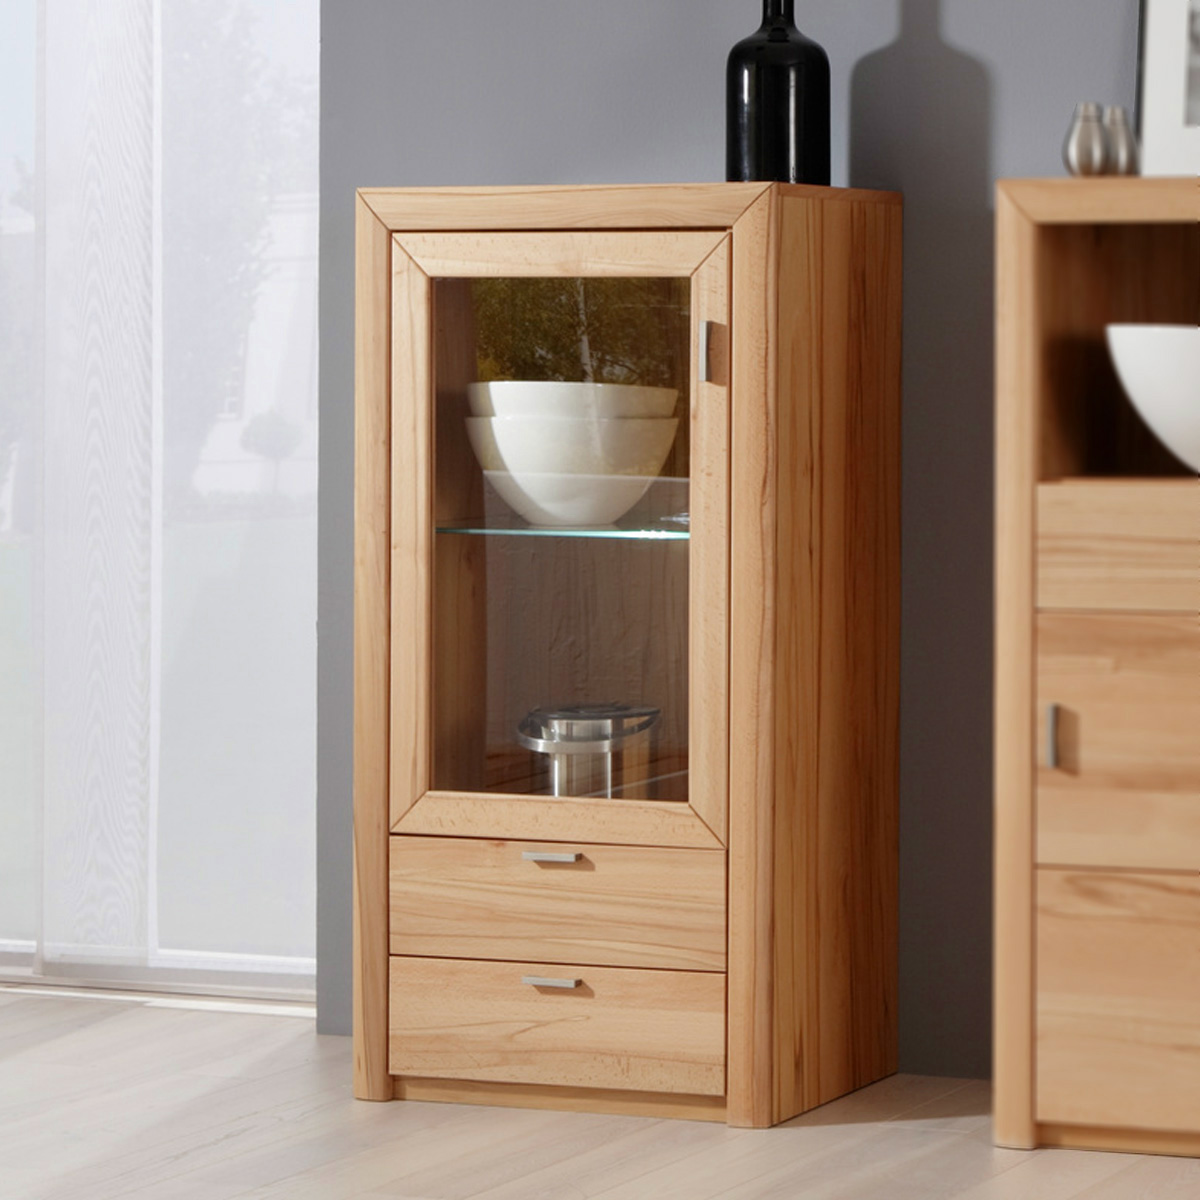 highboard passepartout 04 l vitrine kommode in kernbuche massiv wachseffektlack ebay. Black Bedroom Furniture Sets. Home Design Ideas